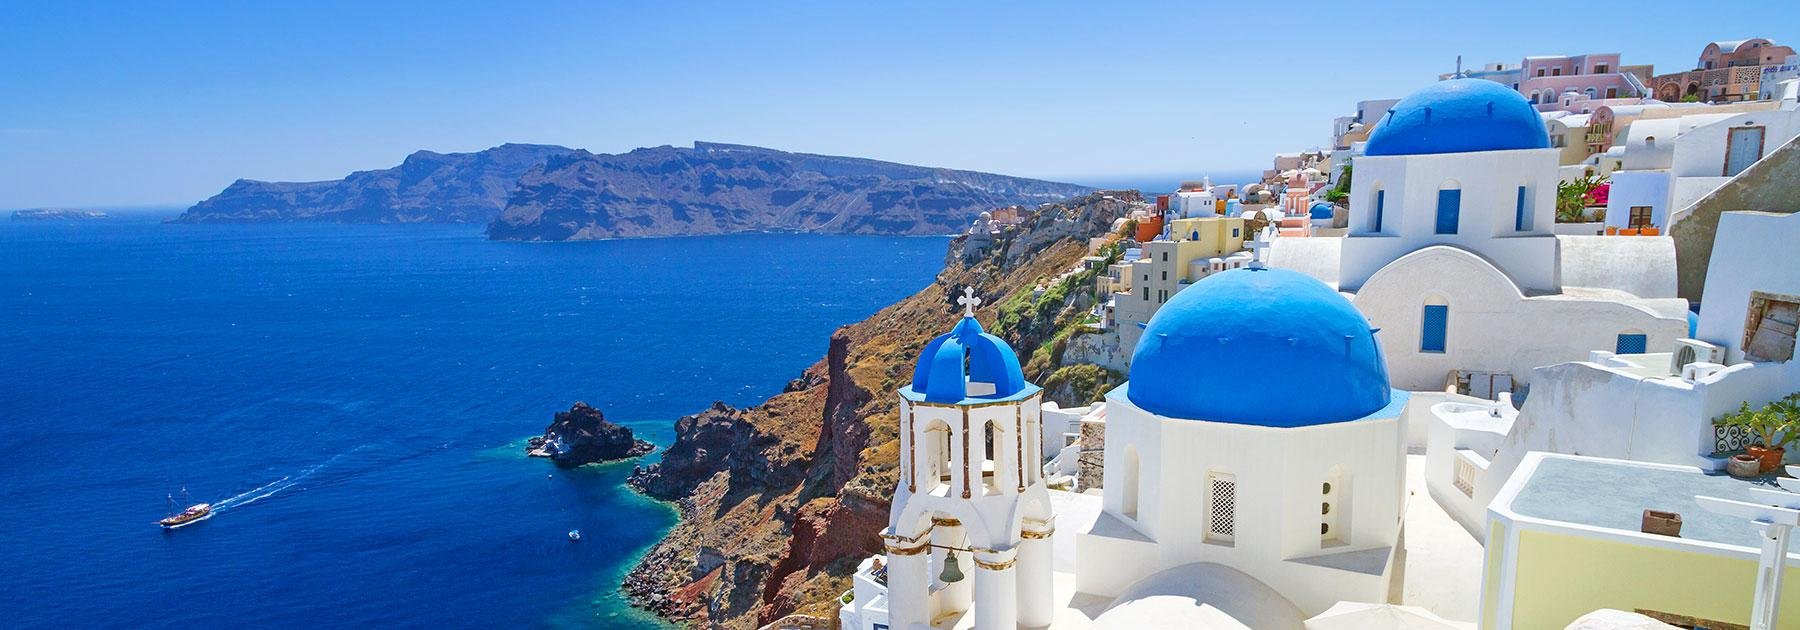 Greece Vacation Packages Greece Trips With Airfare From Gotoday - Greece tour packages